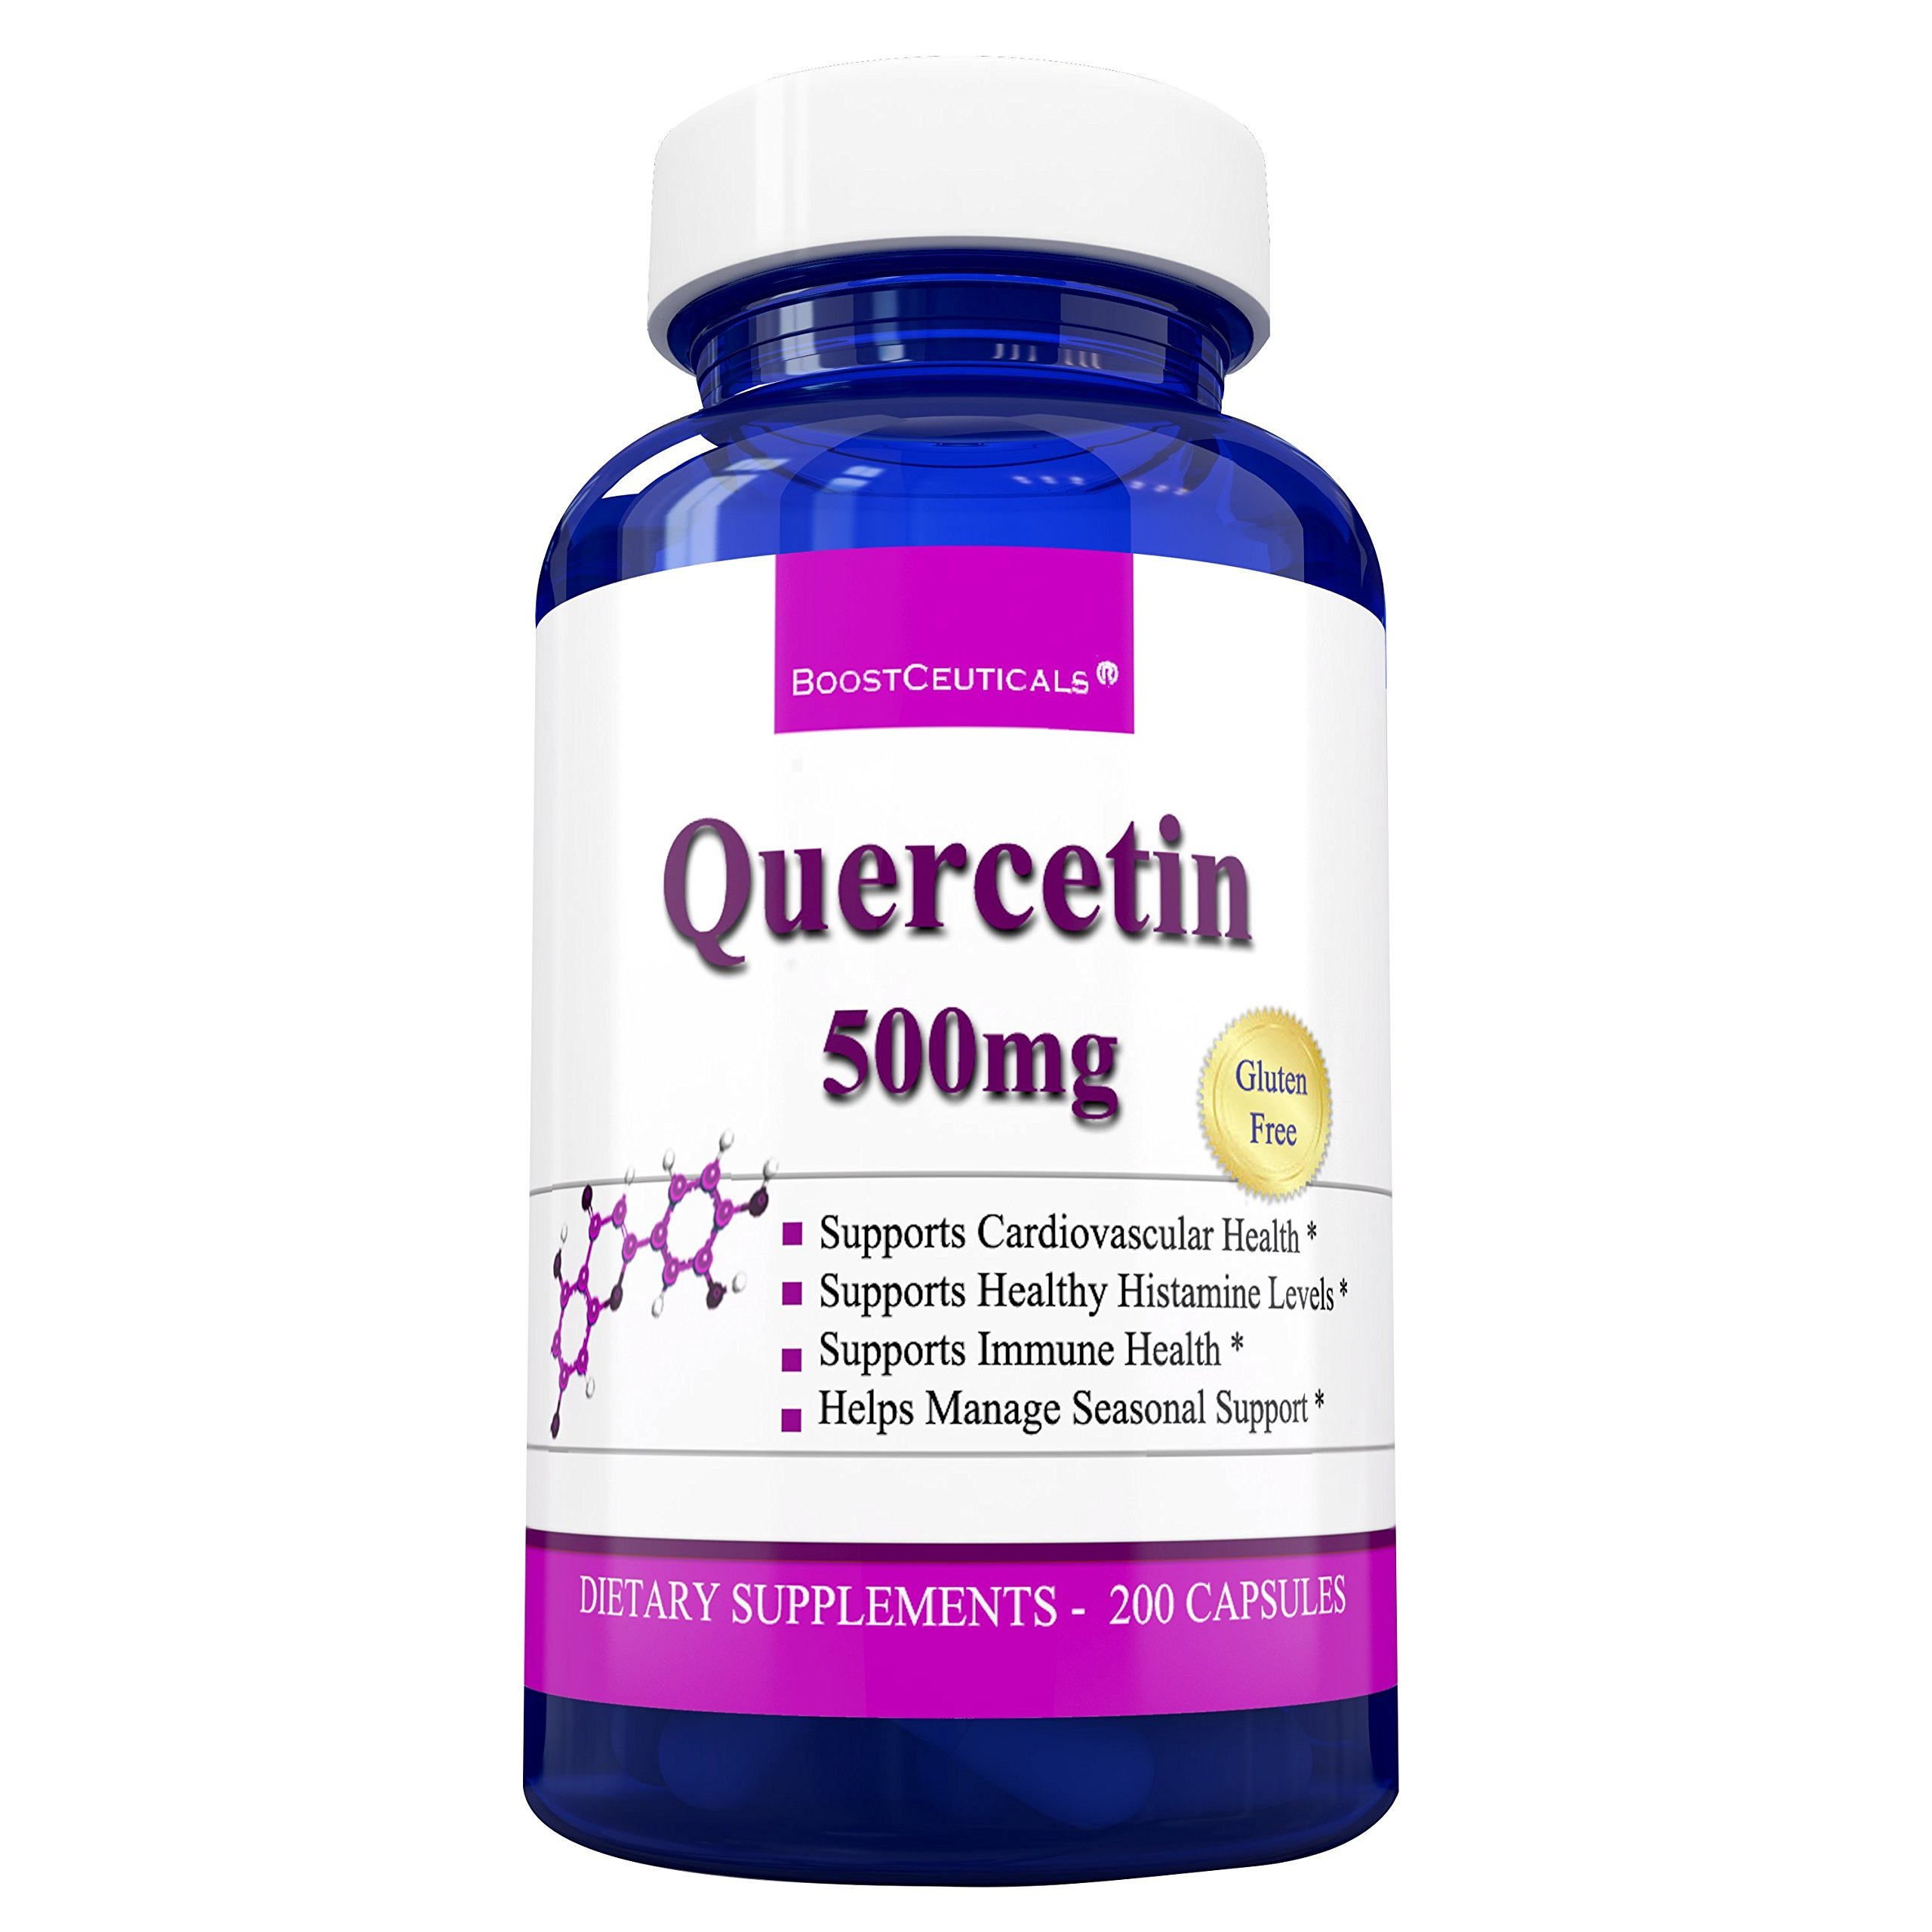 BoostCeuticals Quercetin 200 Capsules - Pure Quercetin 500mg Non-GMO Gluten Free Quercitin Supplements for Anti Inflammatory and Allergy Relief by BoostCeuticals